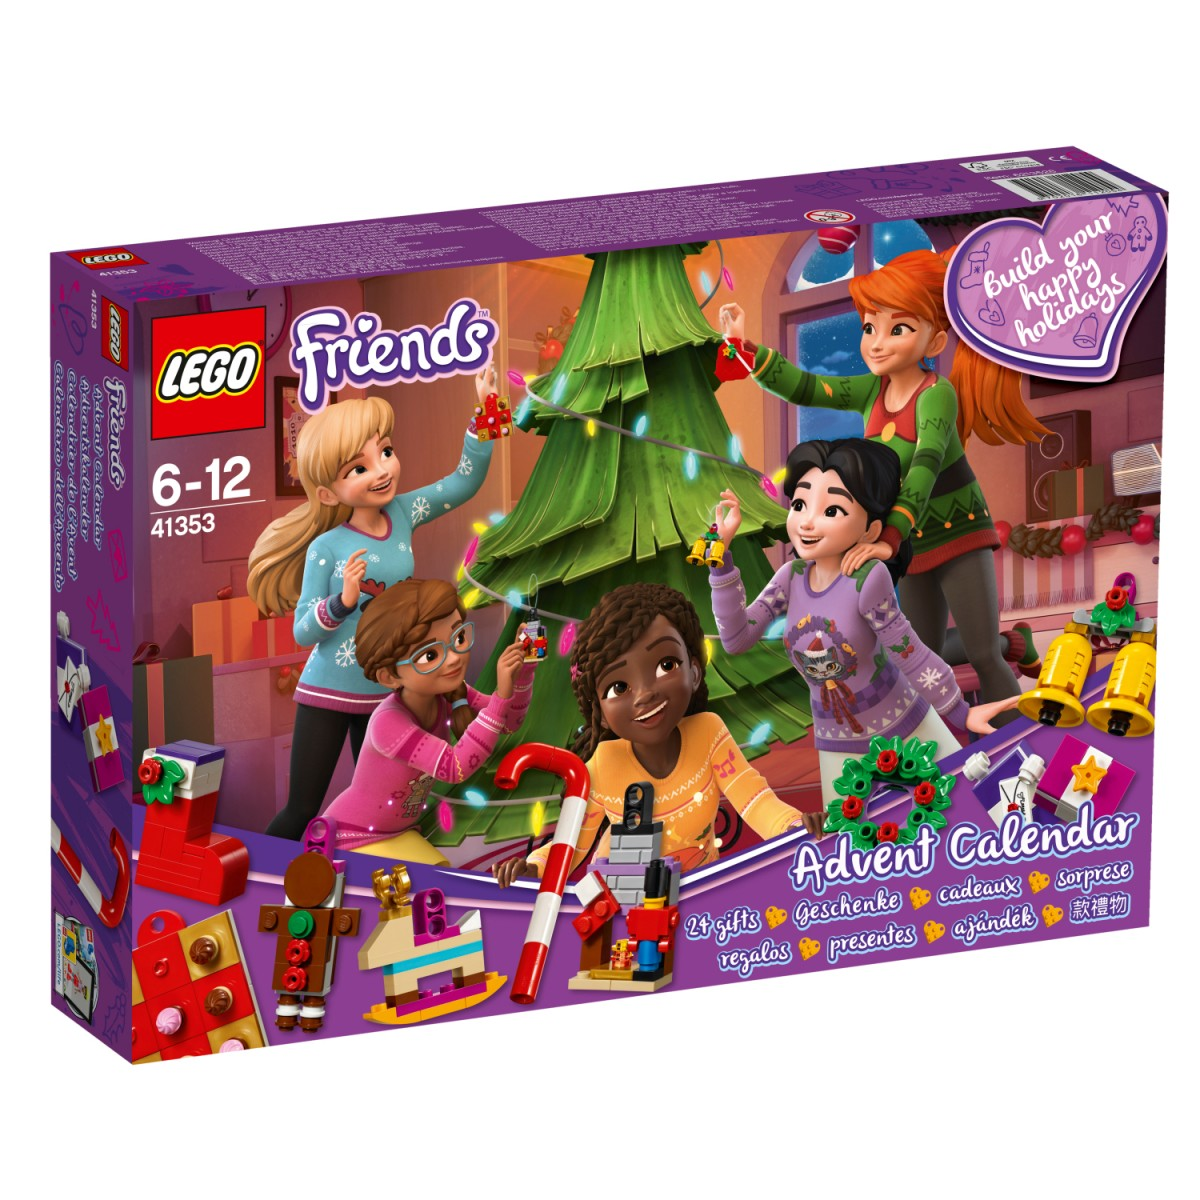 Advento kalendorius LEGO Friends (41353)